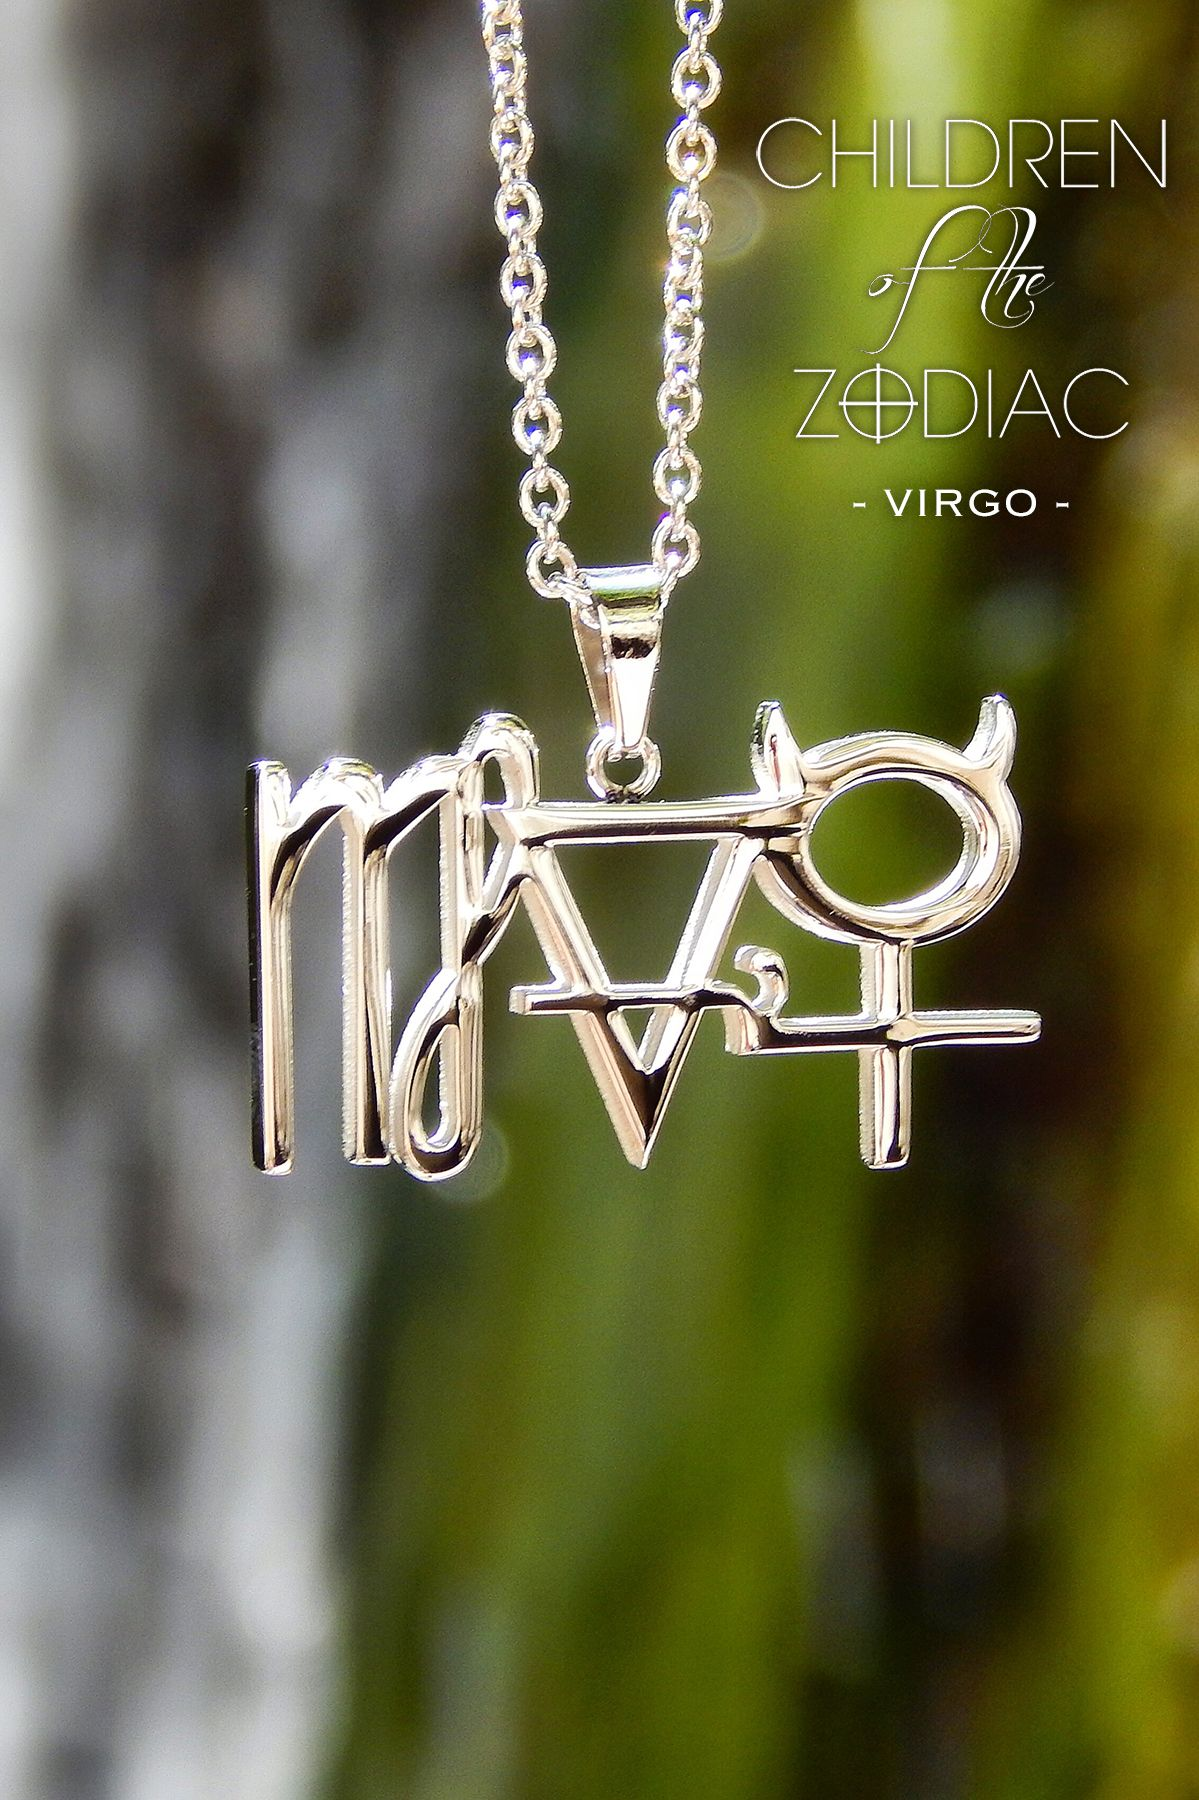 virgo zodiac necklace products blinglane